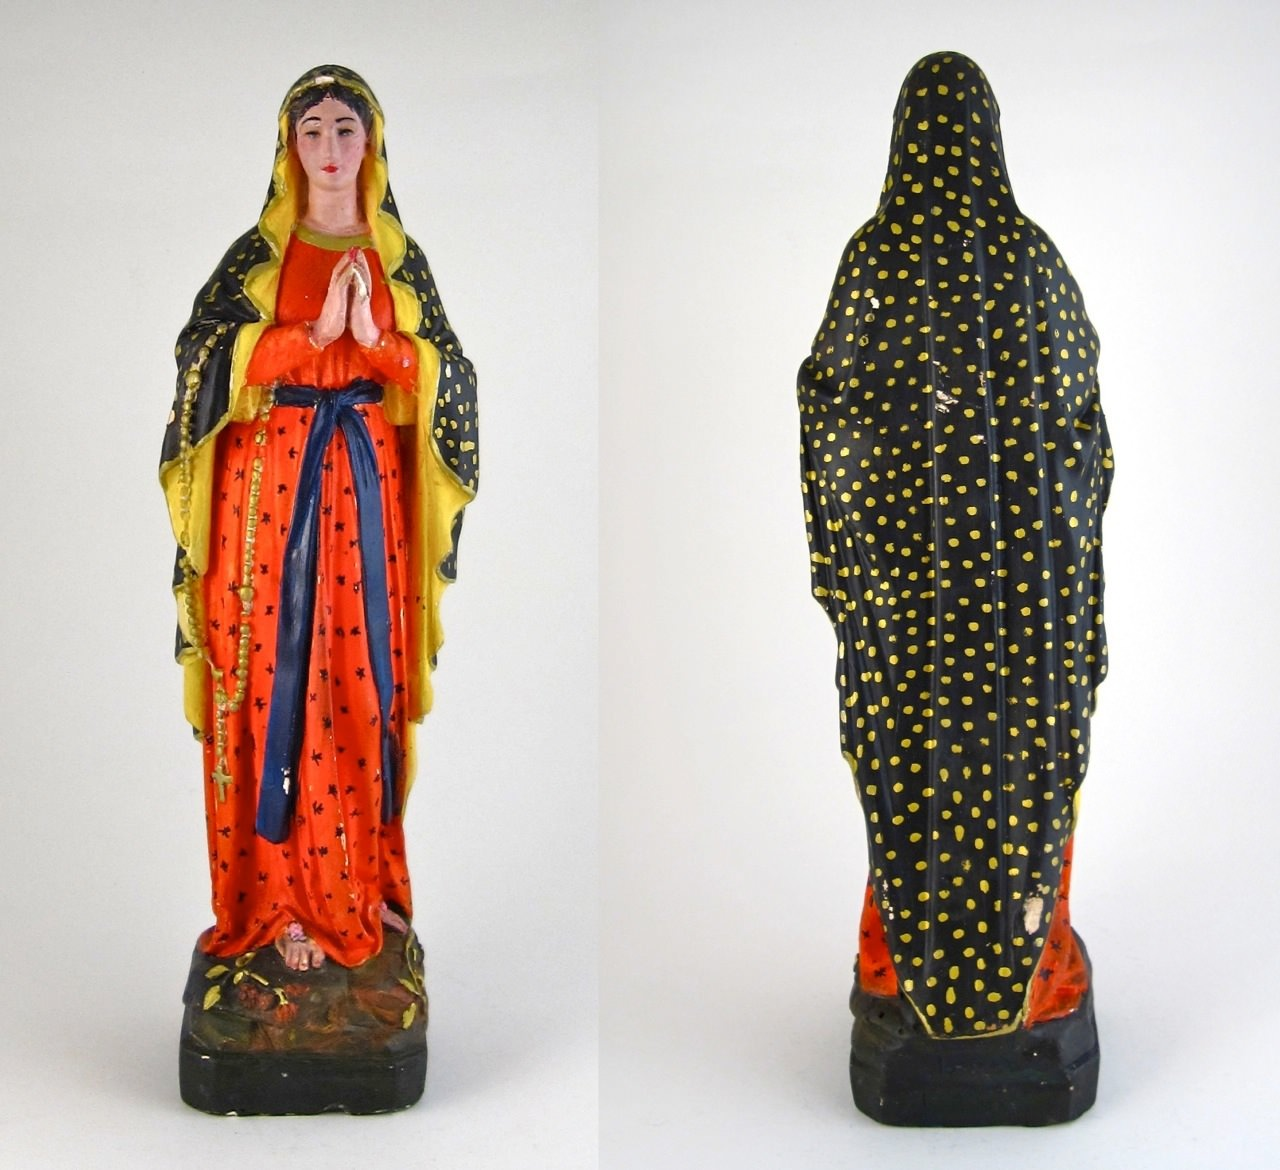 Fig. 11 Our Lady of Lourdes as the Virgin of Guadalupe, 1920s-1930s